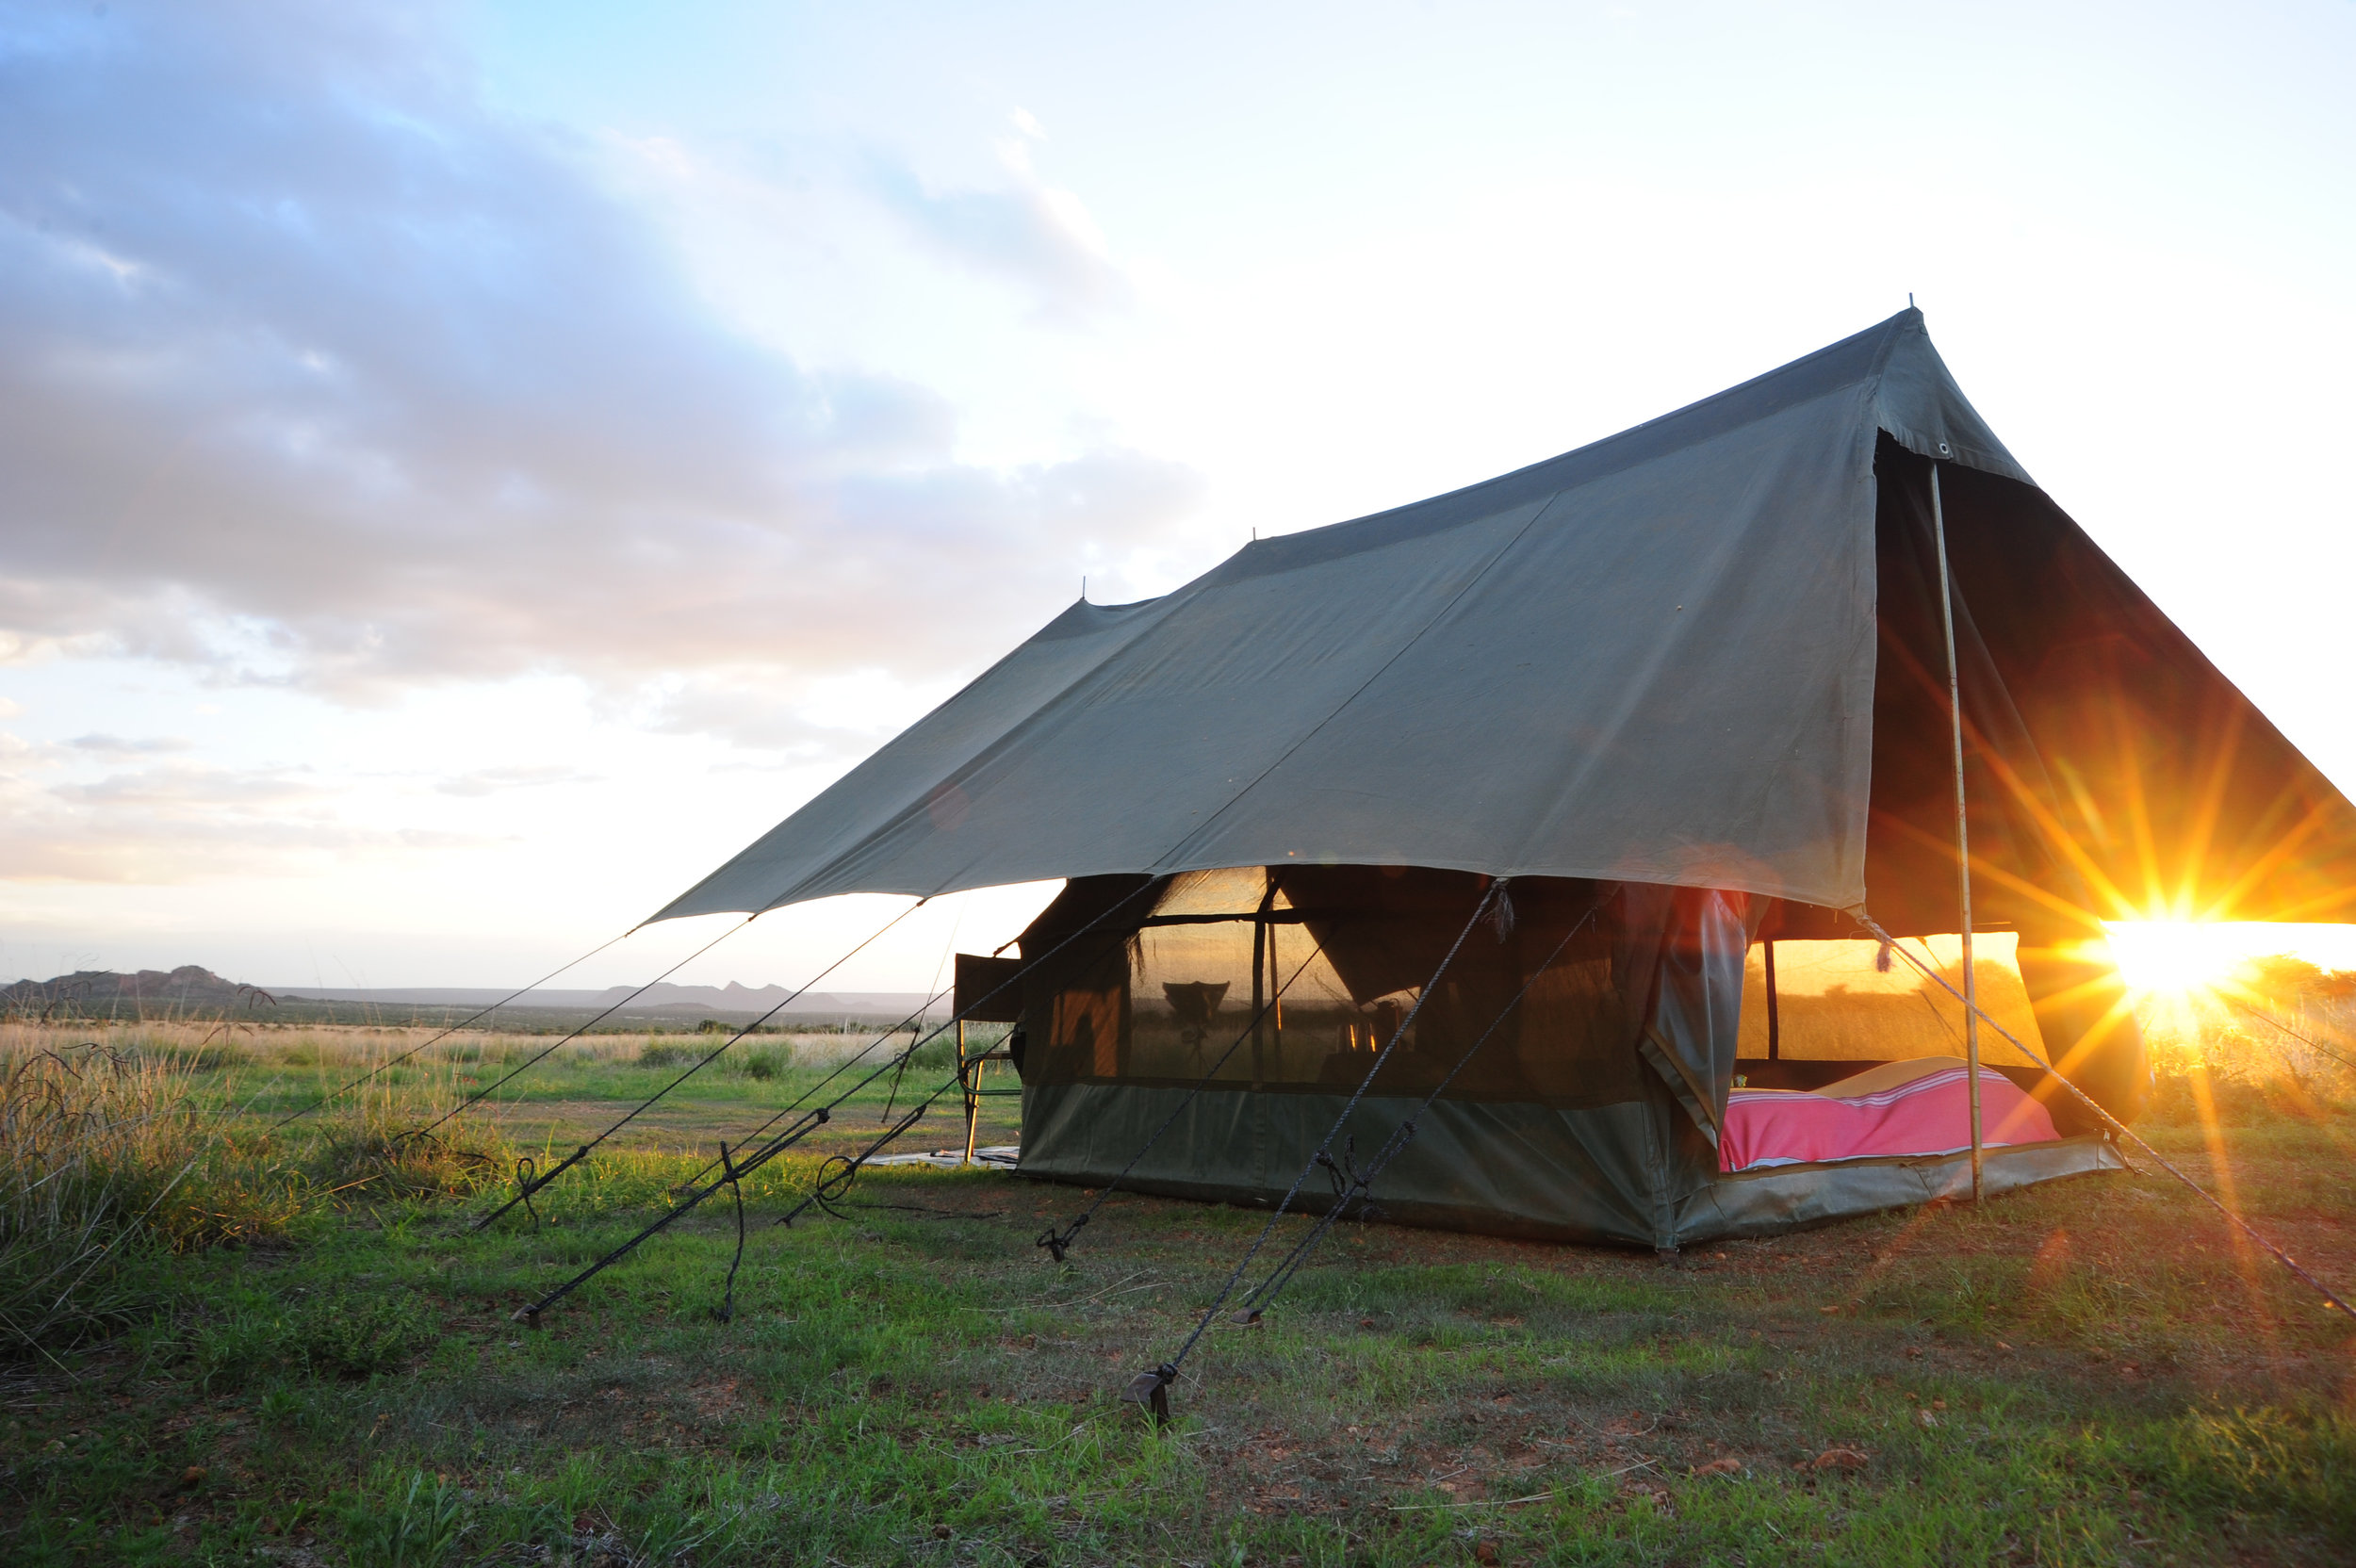 - Exclusive Mobile Walking Safari with camels moving camp each day. Staying in traditional safari tents.